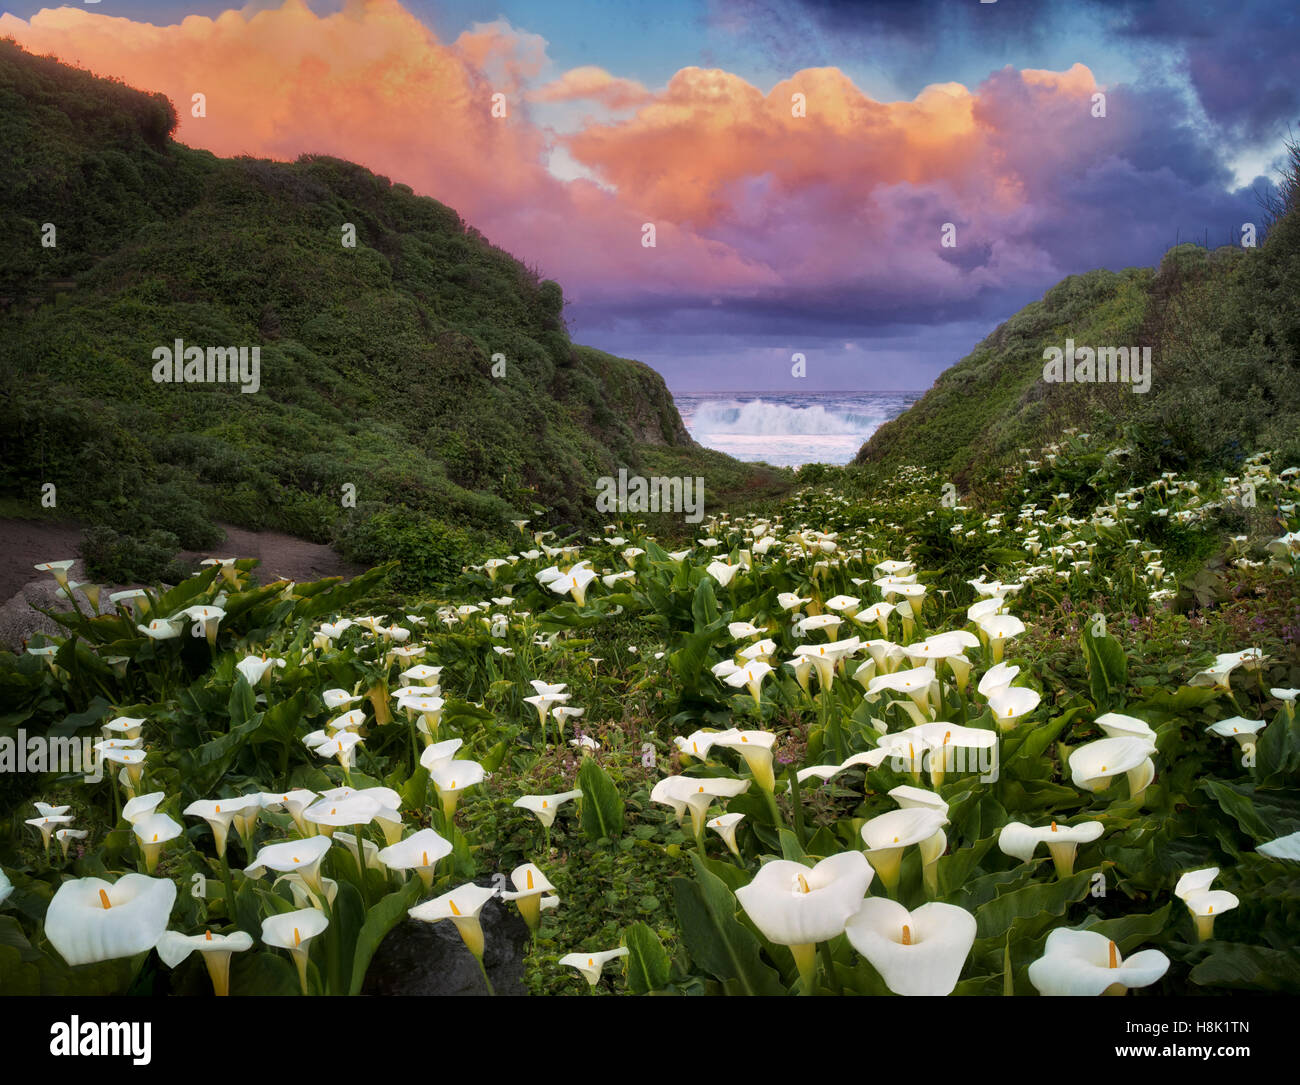 Calla lillies and sunrise clouds. Garrapata State Park, California - Stock Image